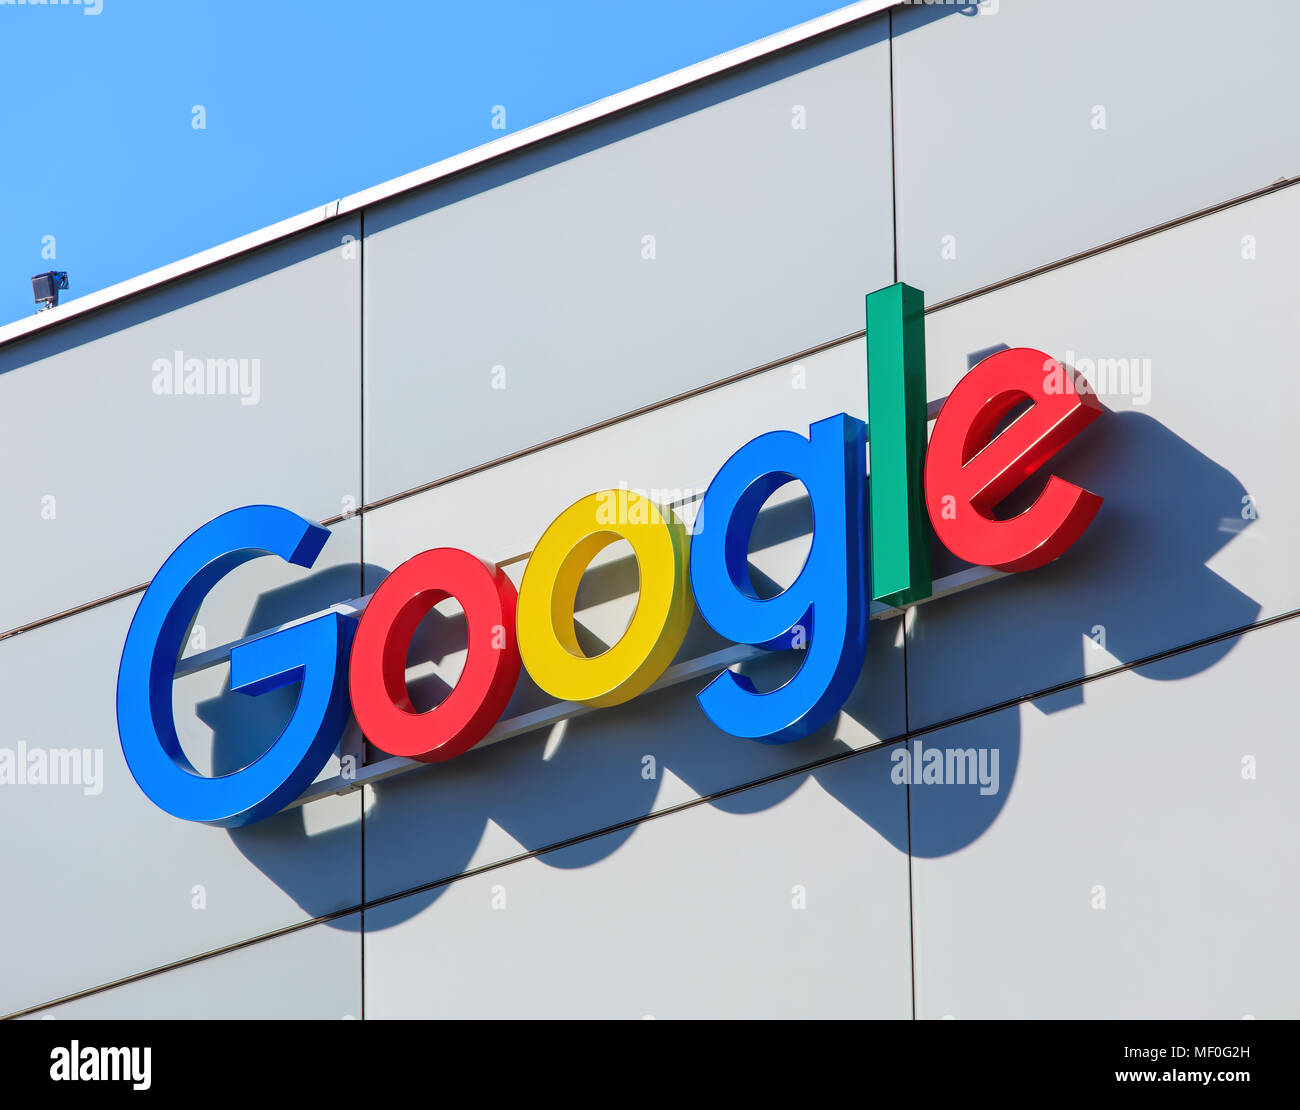 Google office switzerland Office Programmer Zurich Switzerland 20 April 2016 Sign On The Wall Of The Google Office Building Google Is Multinational Technology Company Specializing In Int Alamy Zurich Switzerland 20 April 2016 Sign On The Wall Of The Google